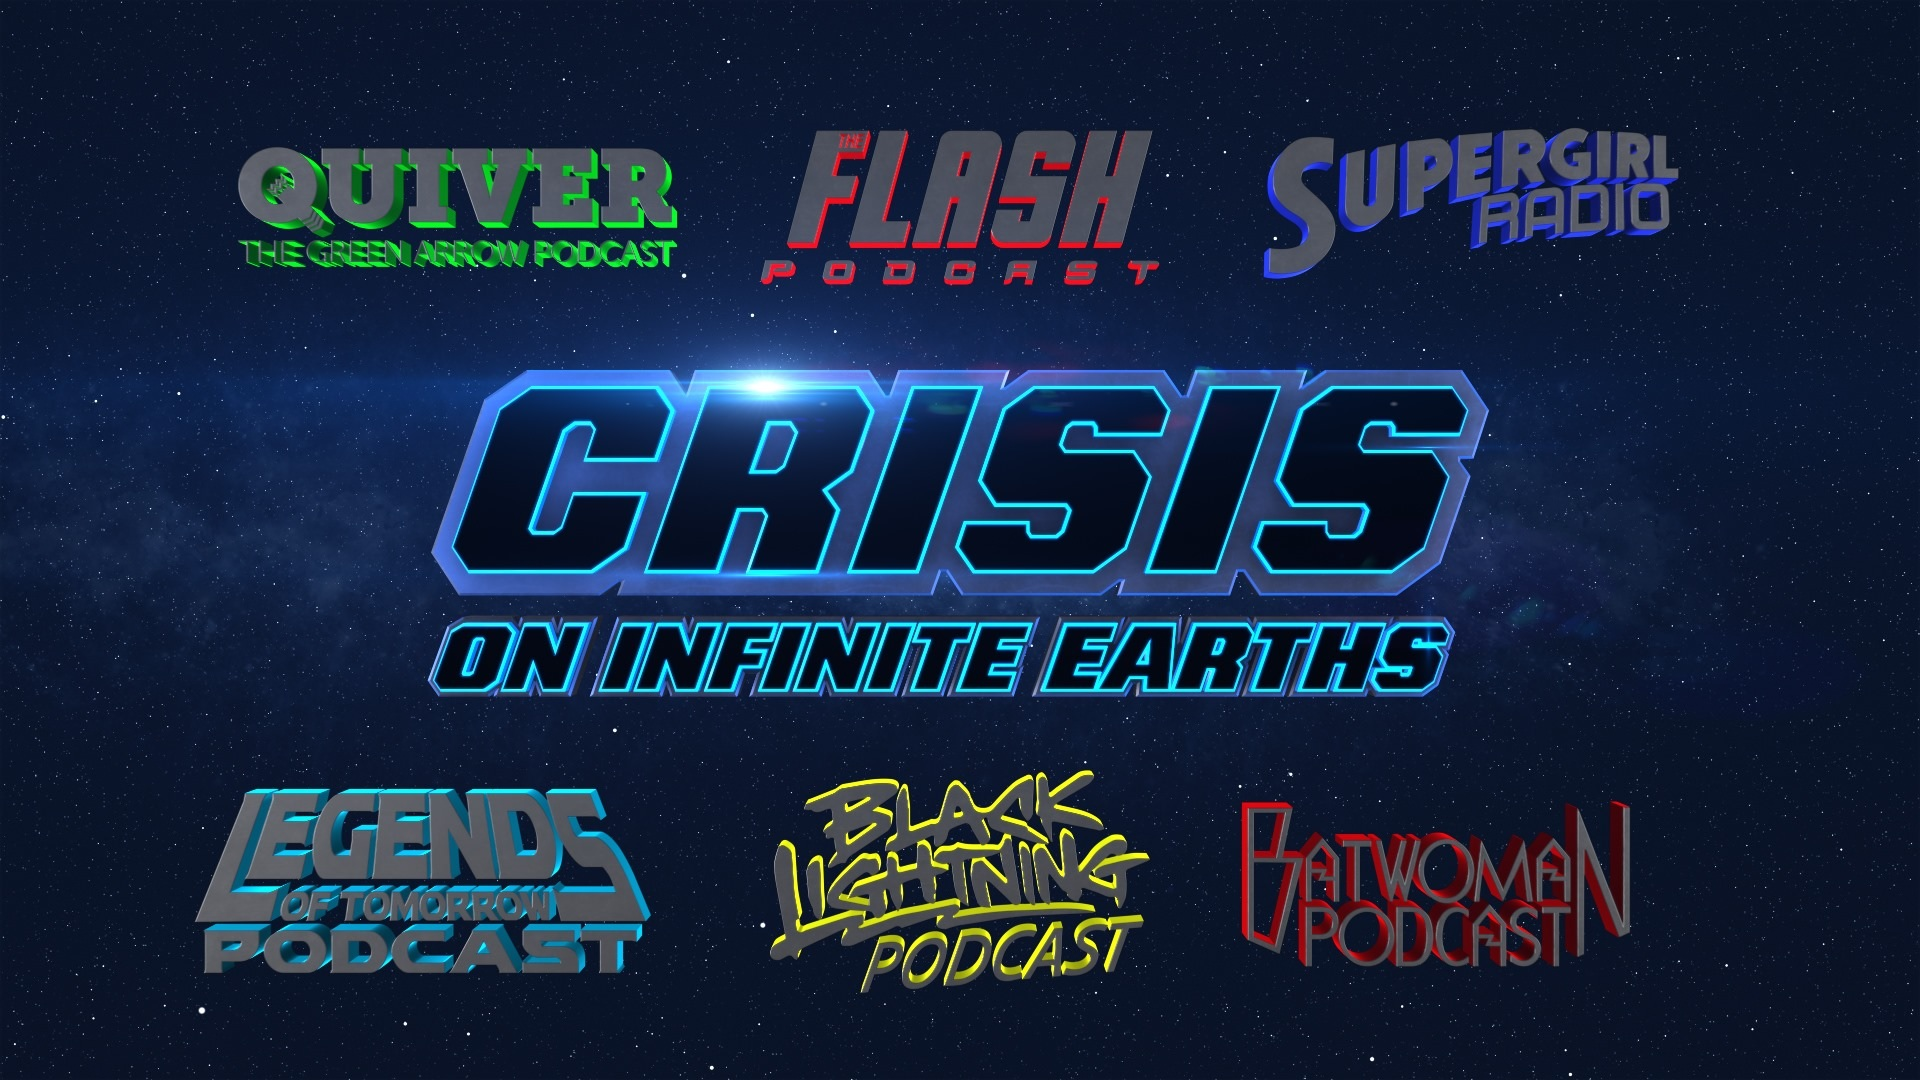 Supergirl Radio Season 6 Episode 9 Crisis On Infinite Earths Part 1 2 3 Podcast Crossover